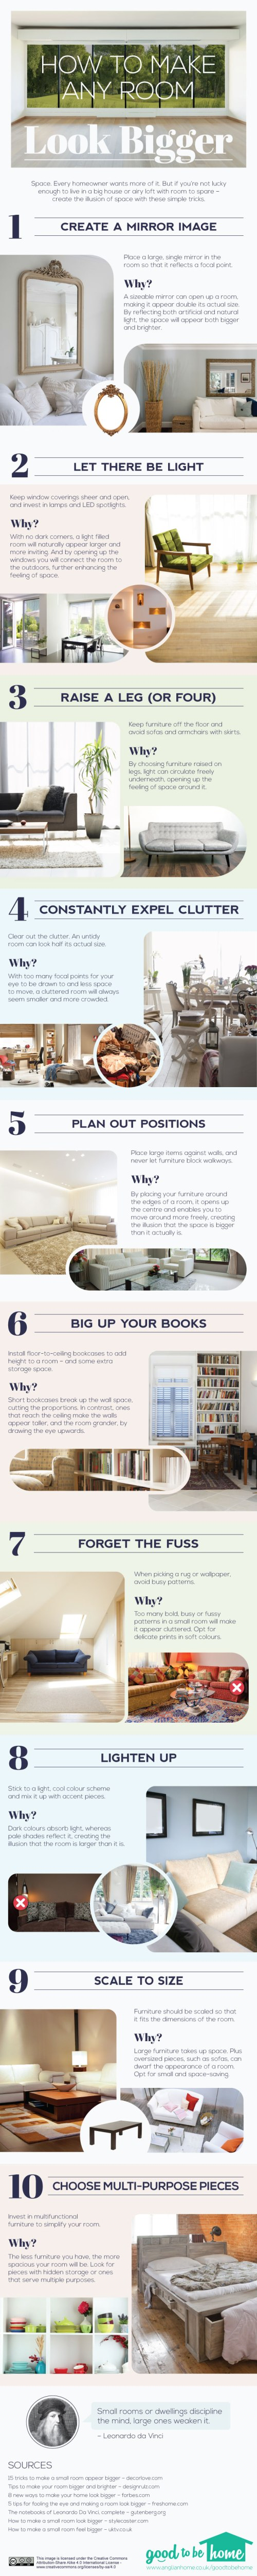 Sometimes it is the small things that make a huge impact. Learn how to make a room look bigger with all these great tips. How to make a Room Look Bigger via tipsaholic.com #home #decor #interiordesign